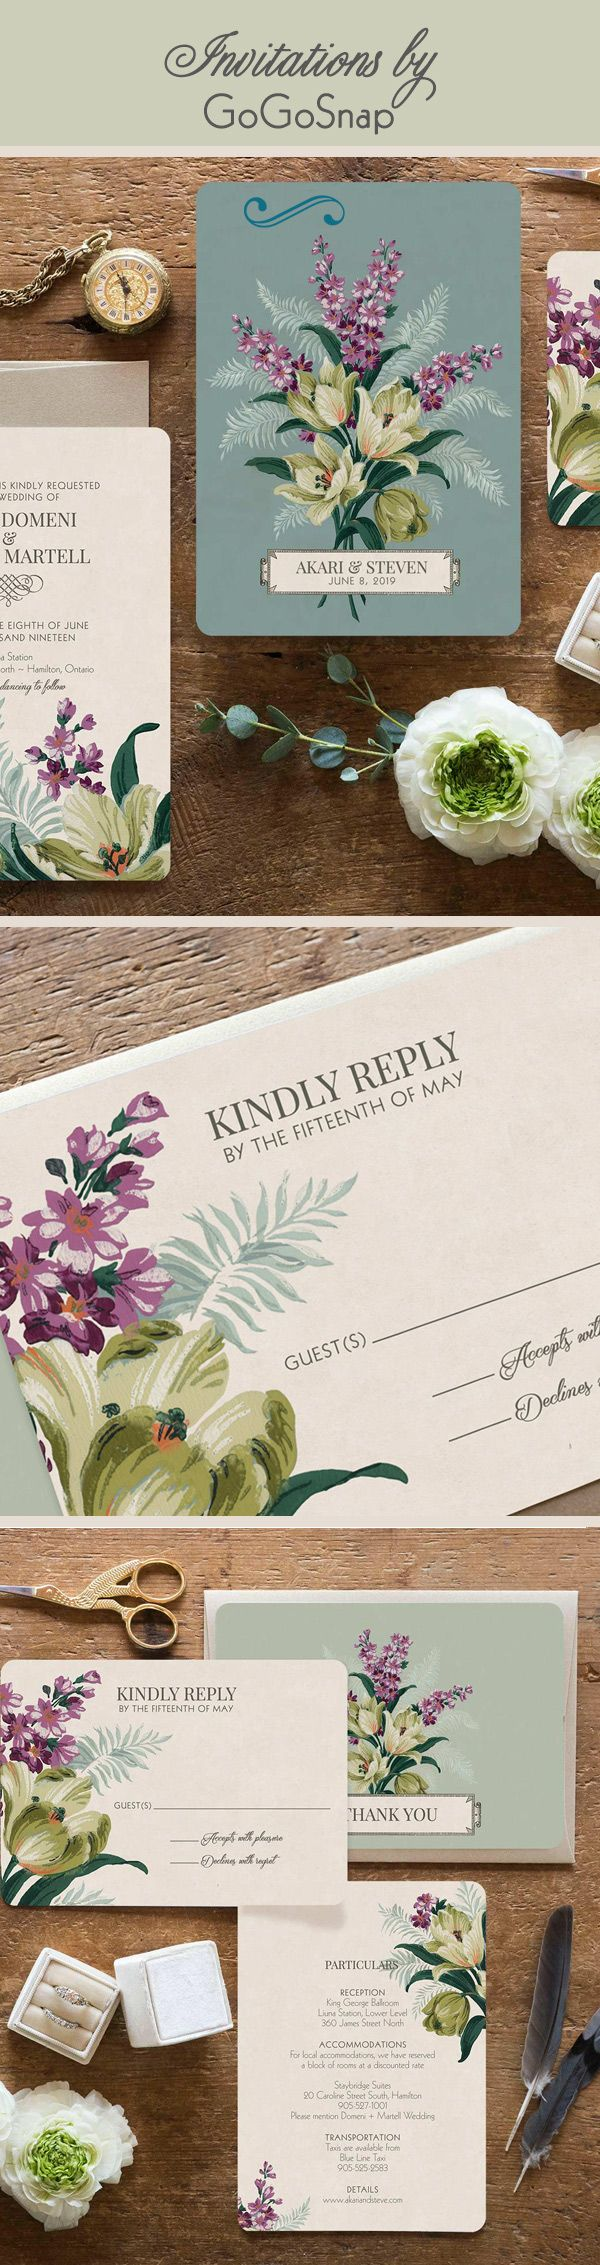 Vintage Floral Wedding Invitationsby GoGoSnap So painterly